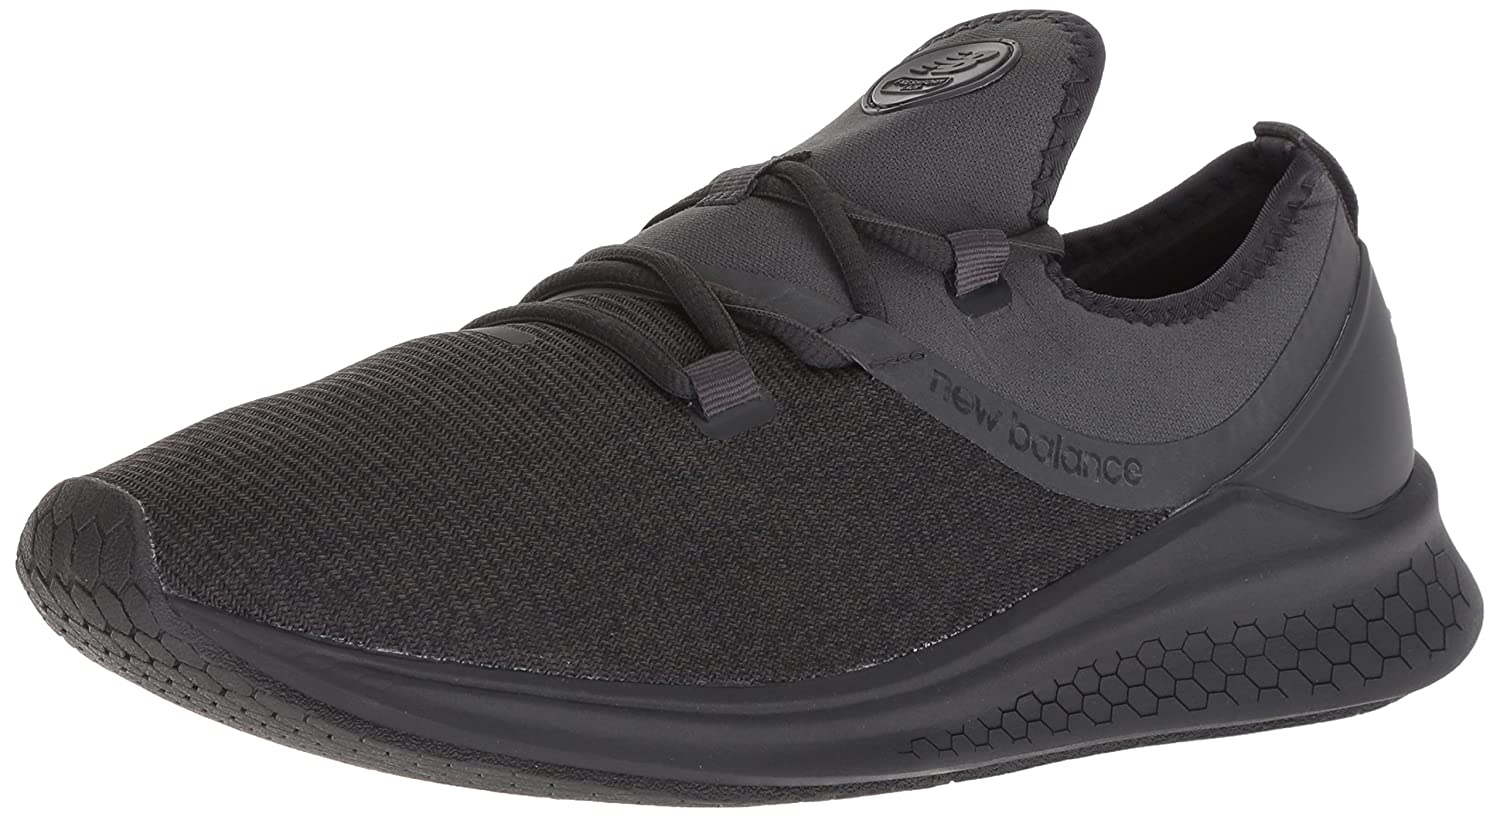 New Balance Men's Fresh Foam Lazr Heathered B075R6VHK3 8 D(M) US|Grey